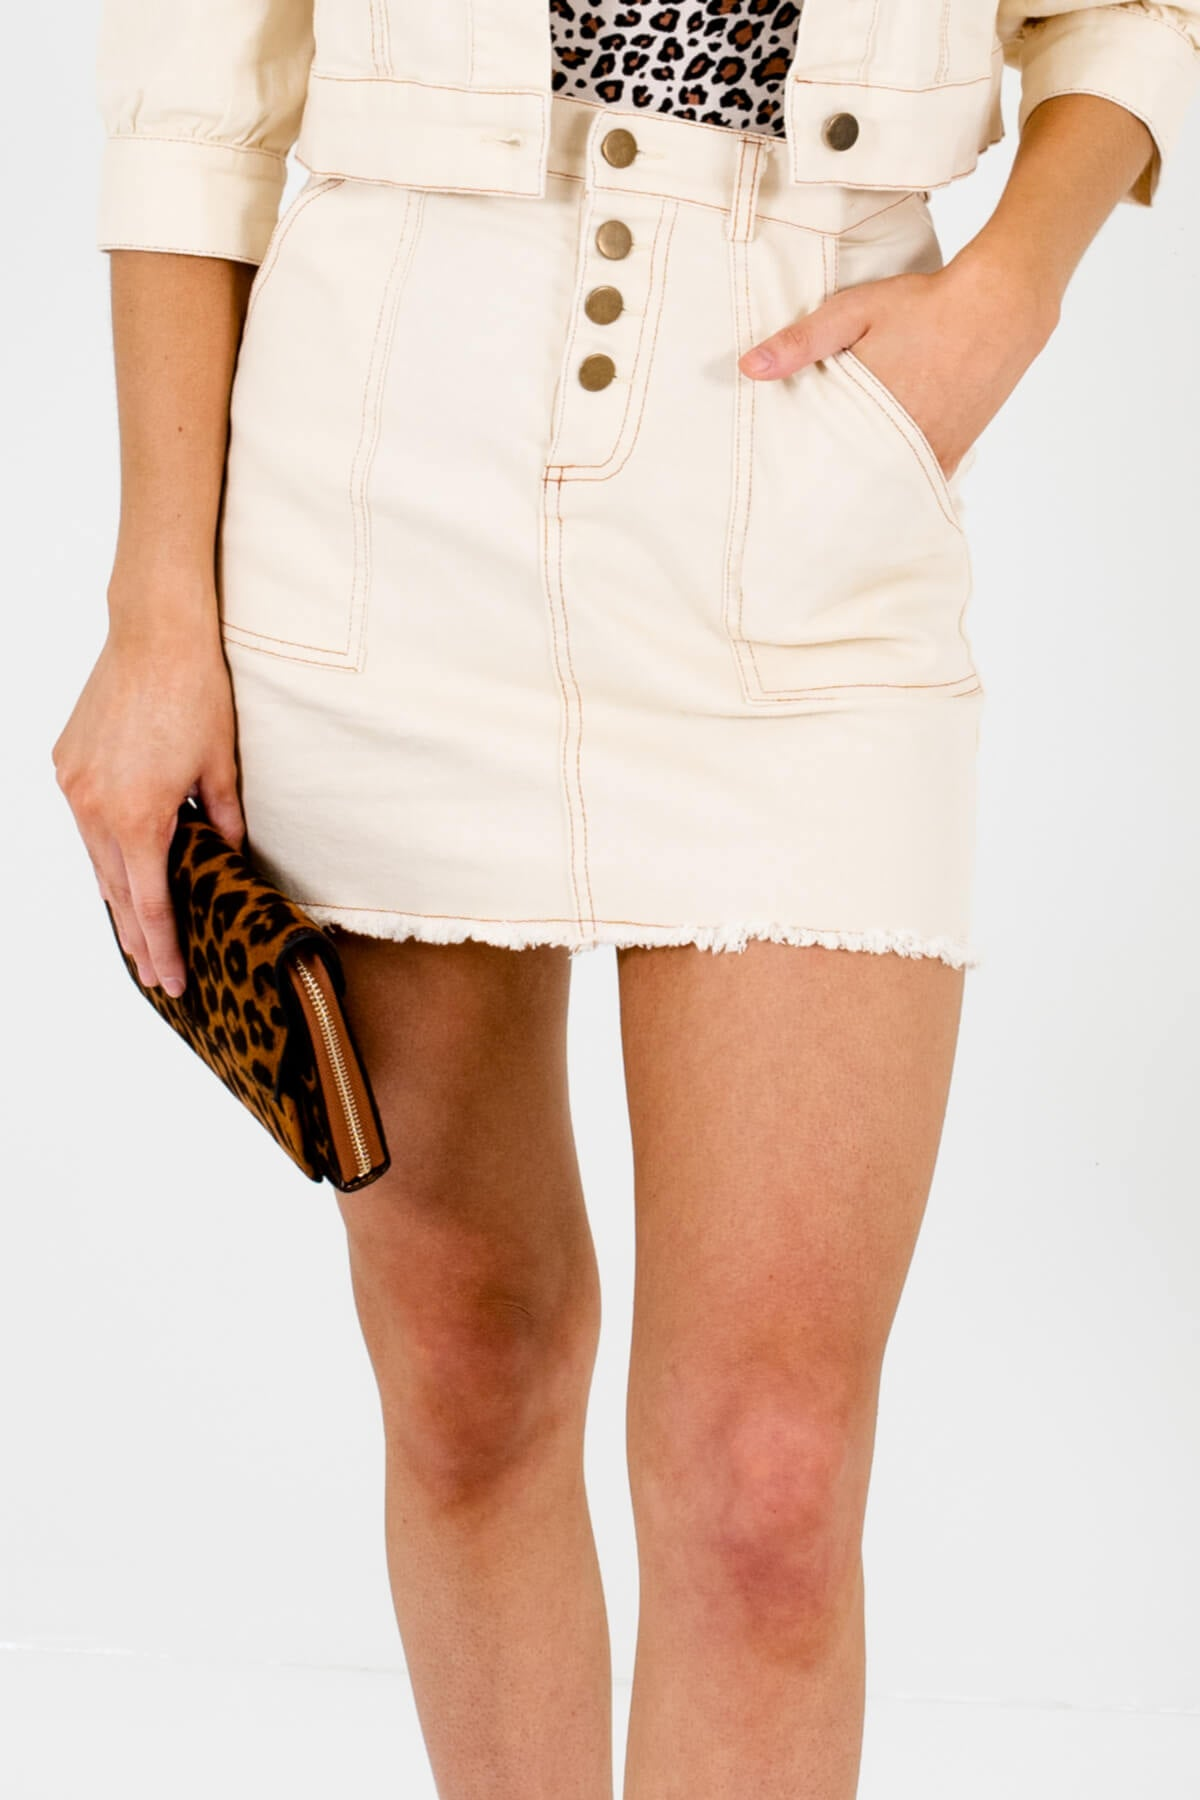 Cream High-Quality Denim Material Boutique Mini Skirts for Women